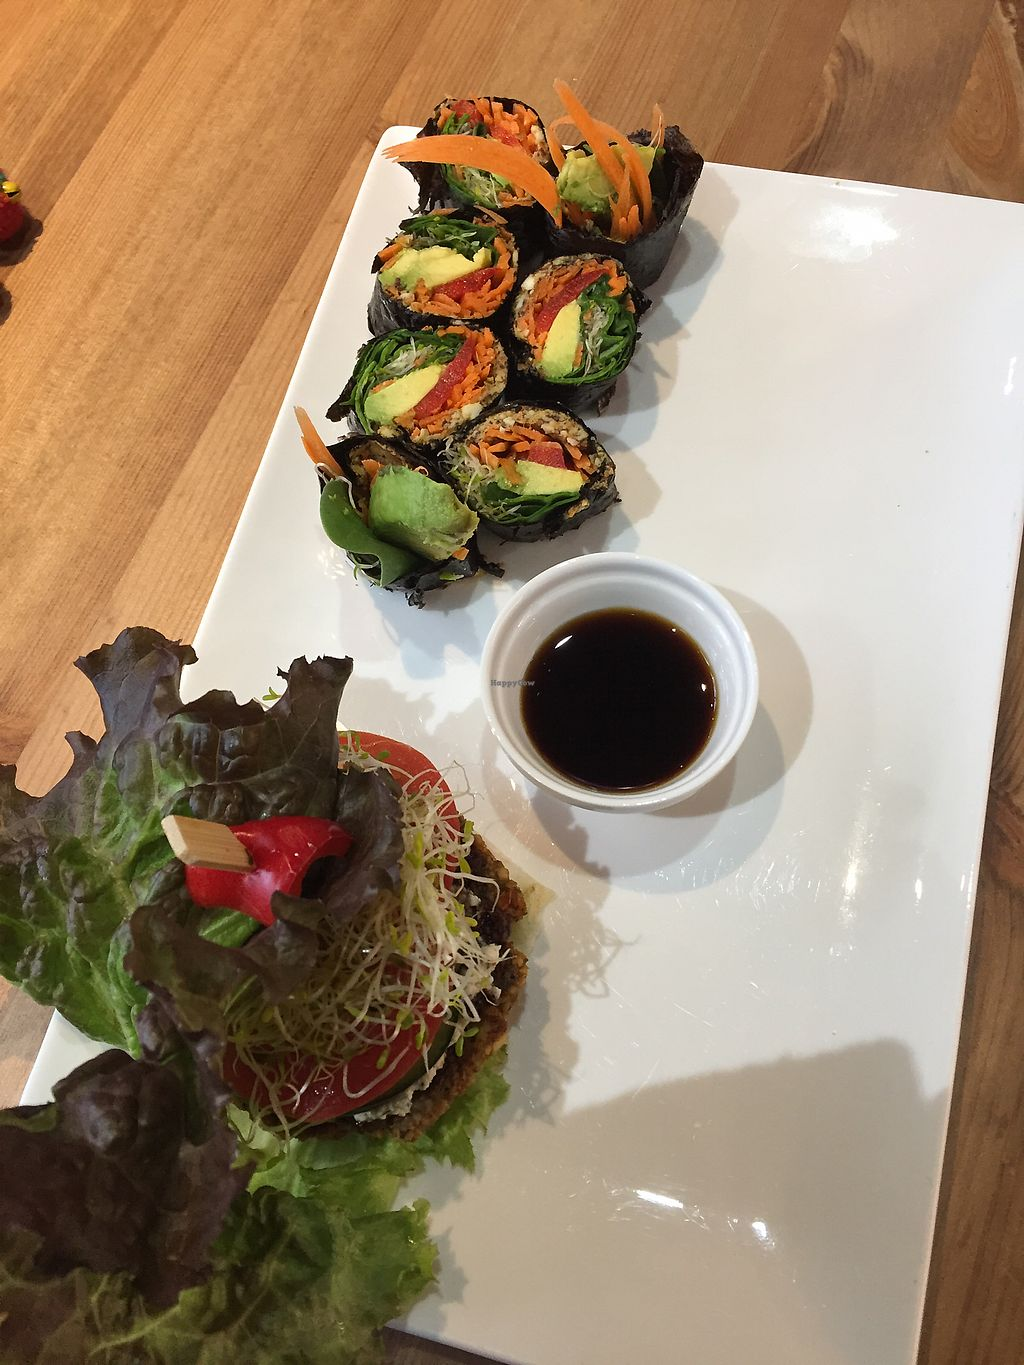 """Photo of Cafe by Tao  by <a href=""""/members/profile/Shxylah"""">Shxylah</a> <br/>Raw burger + nori rolls ❤️? <br/> April 4, 2018  - <a href='/contact/abuse/image/33858/380817'>Report</a>"""